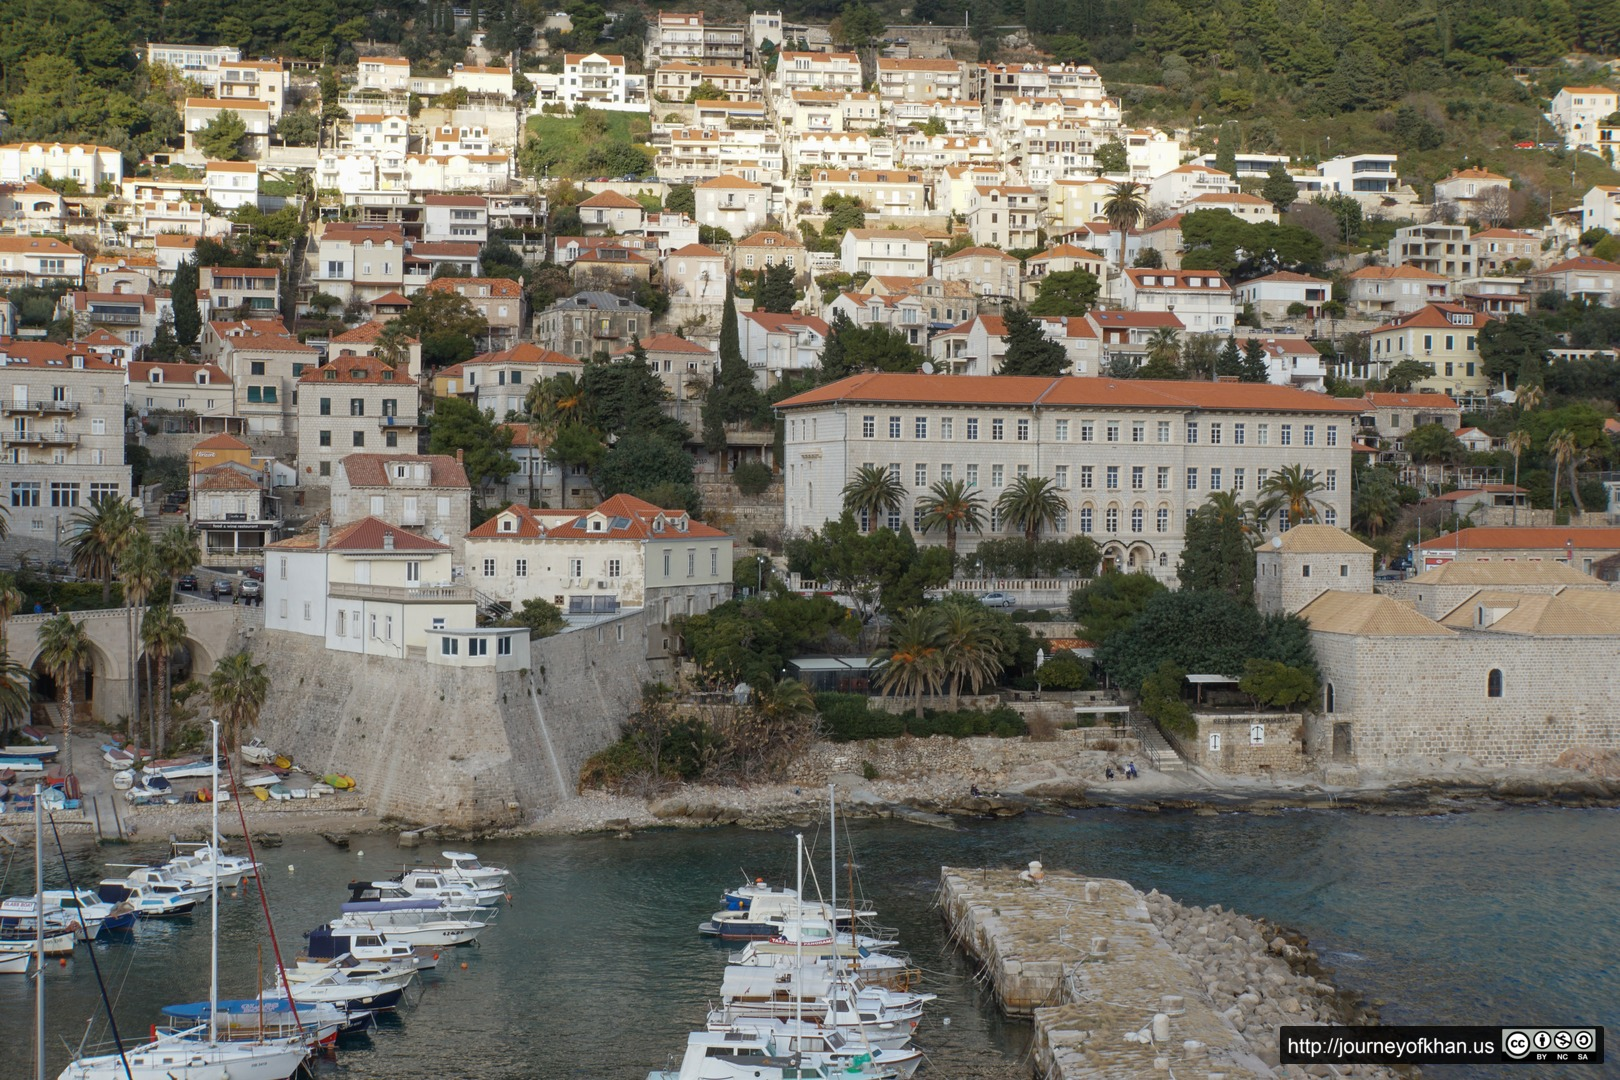 Houses and Boats in Dubrovnik